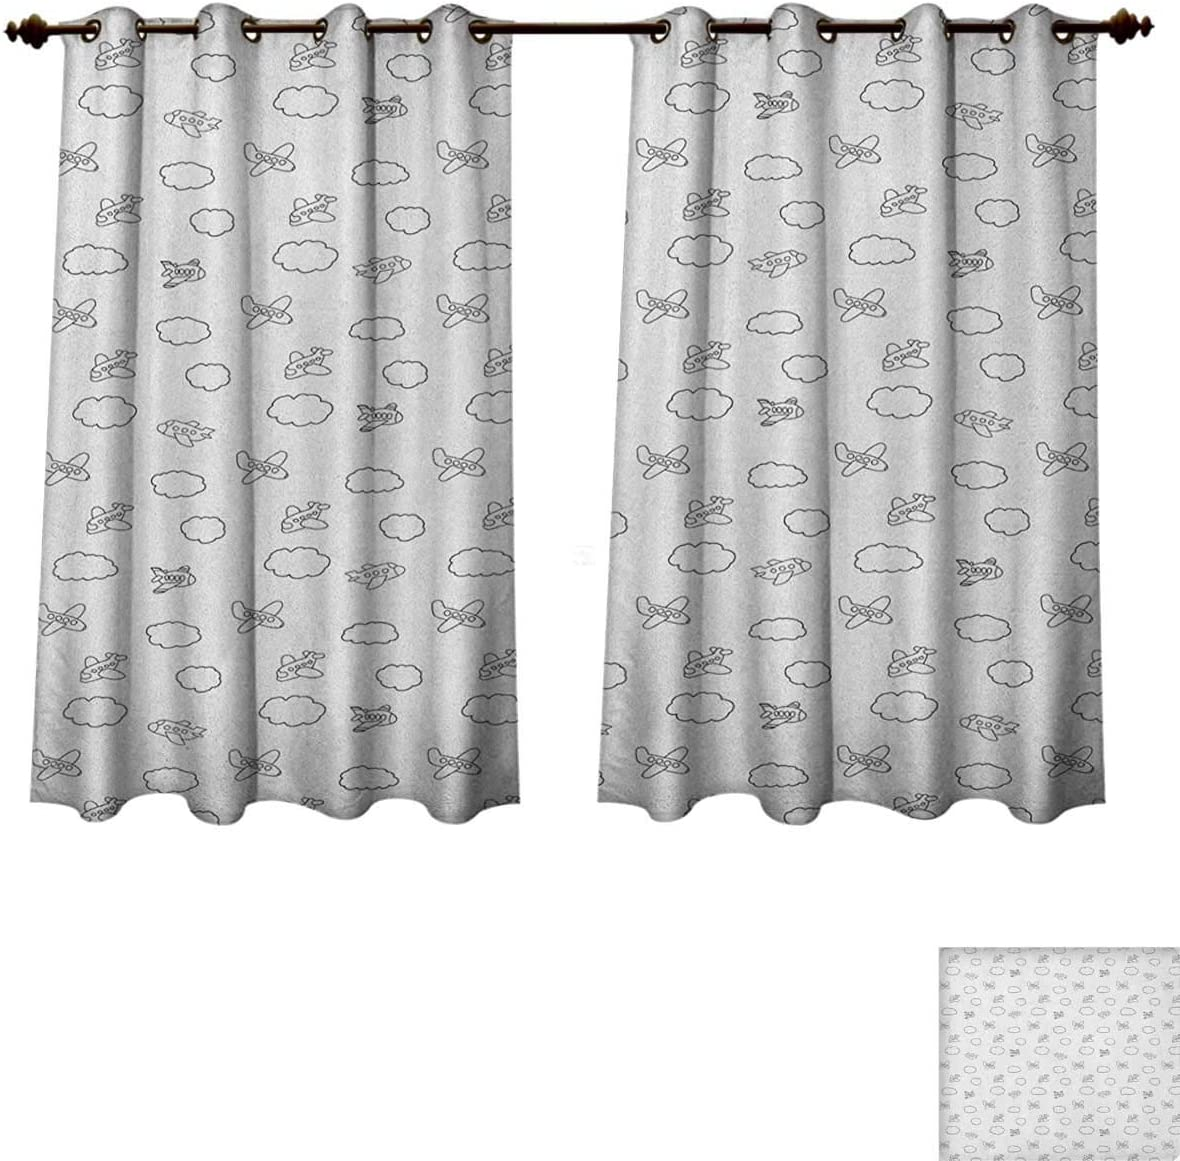 Pricetextile Airplane Bedroom Thermal Blackout Curtains Childish Boys Pattern With Little Aeroplanes And Puffy Clouds In Doodle Style Drapes For Living Room Black White Size W63 Xl45 Amazon Co Uk Kitchen Home